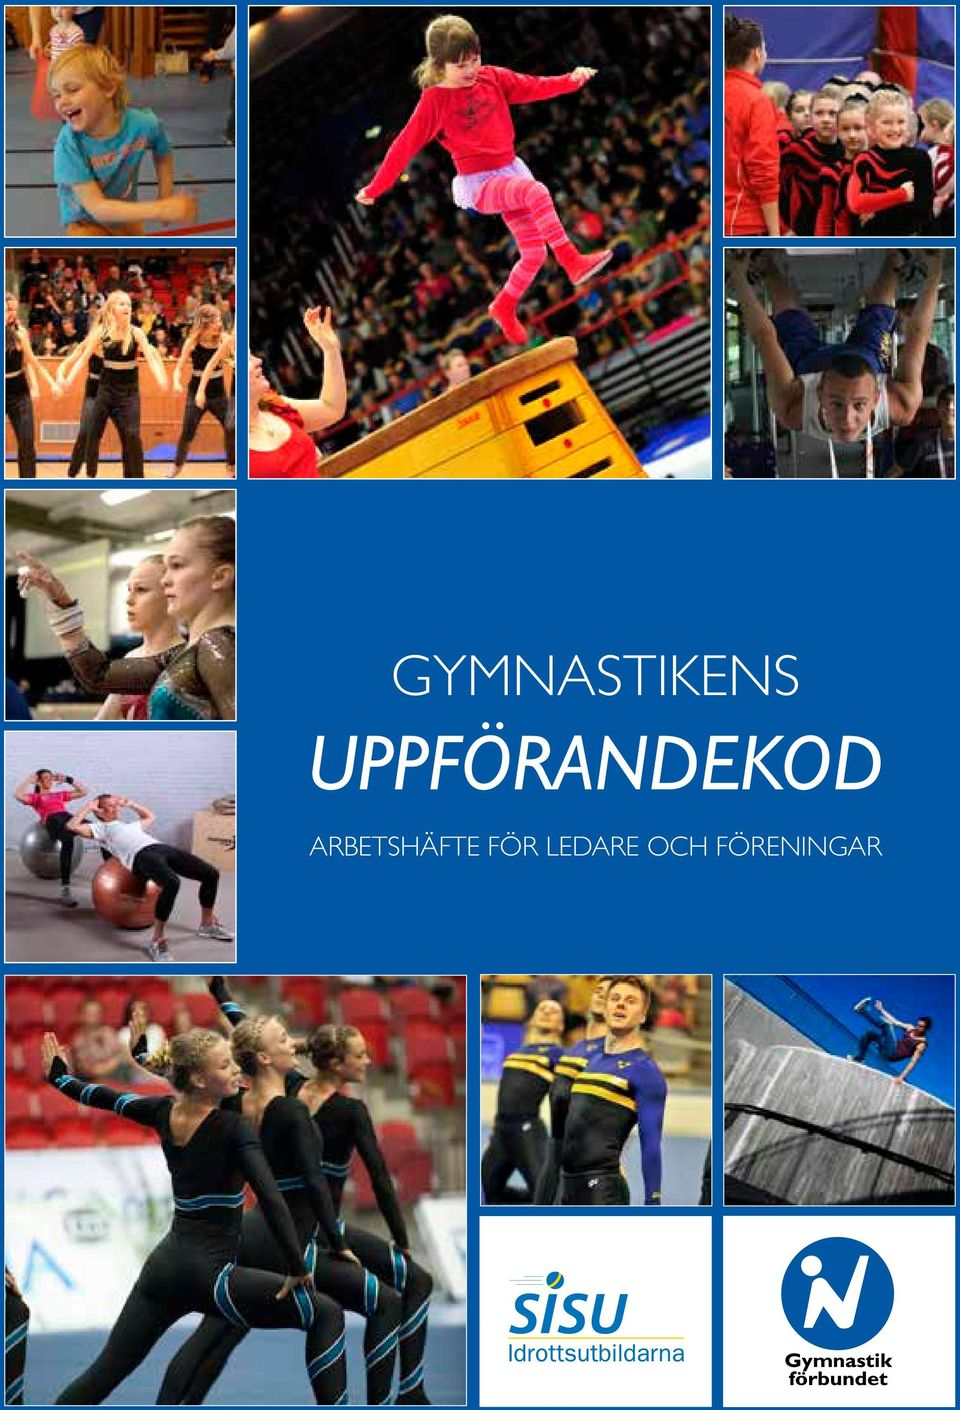 GYMNASTIKENS